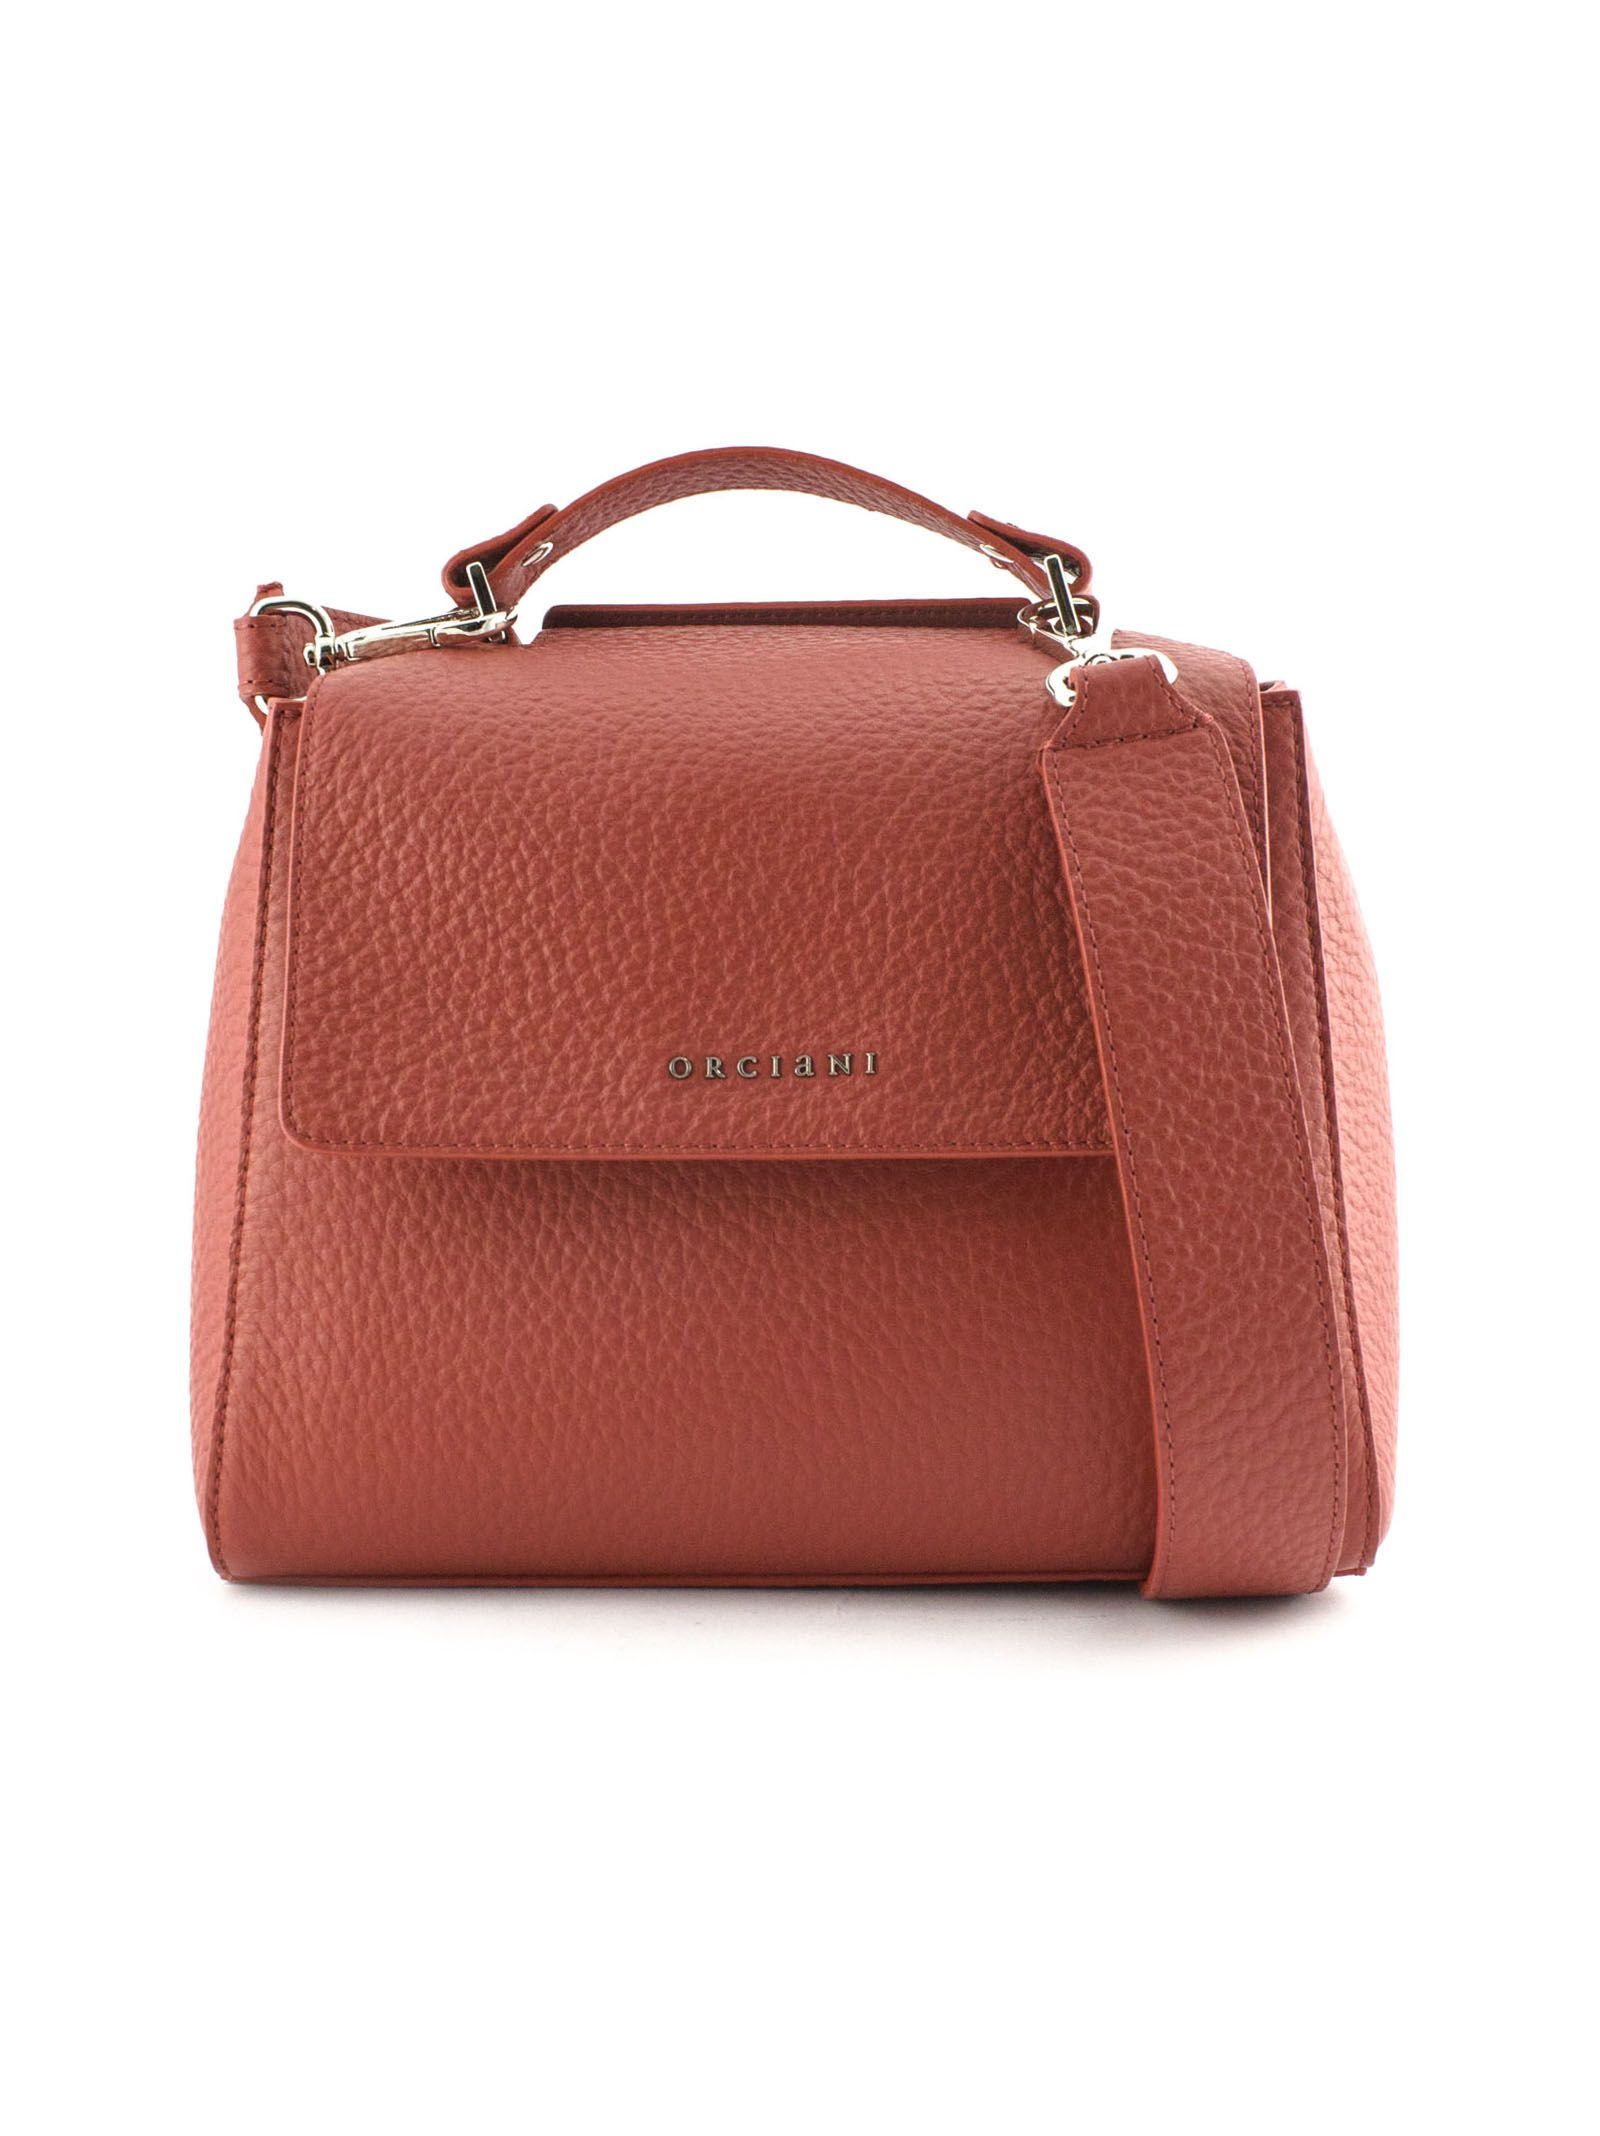 Orciani Sveva Small Red Leather Handbag In Rosso  238bade991280